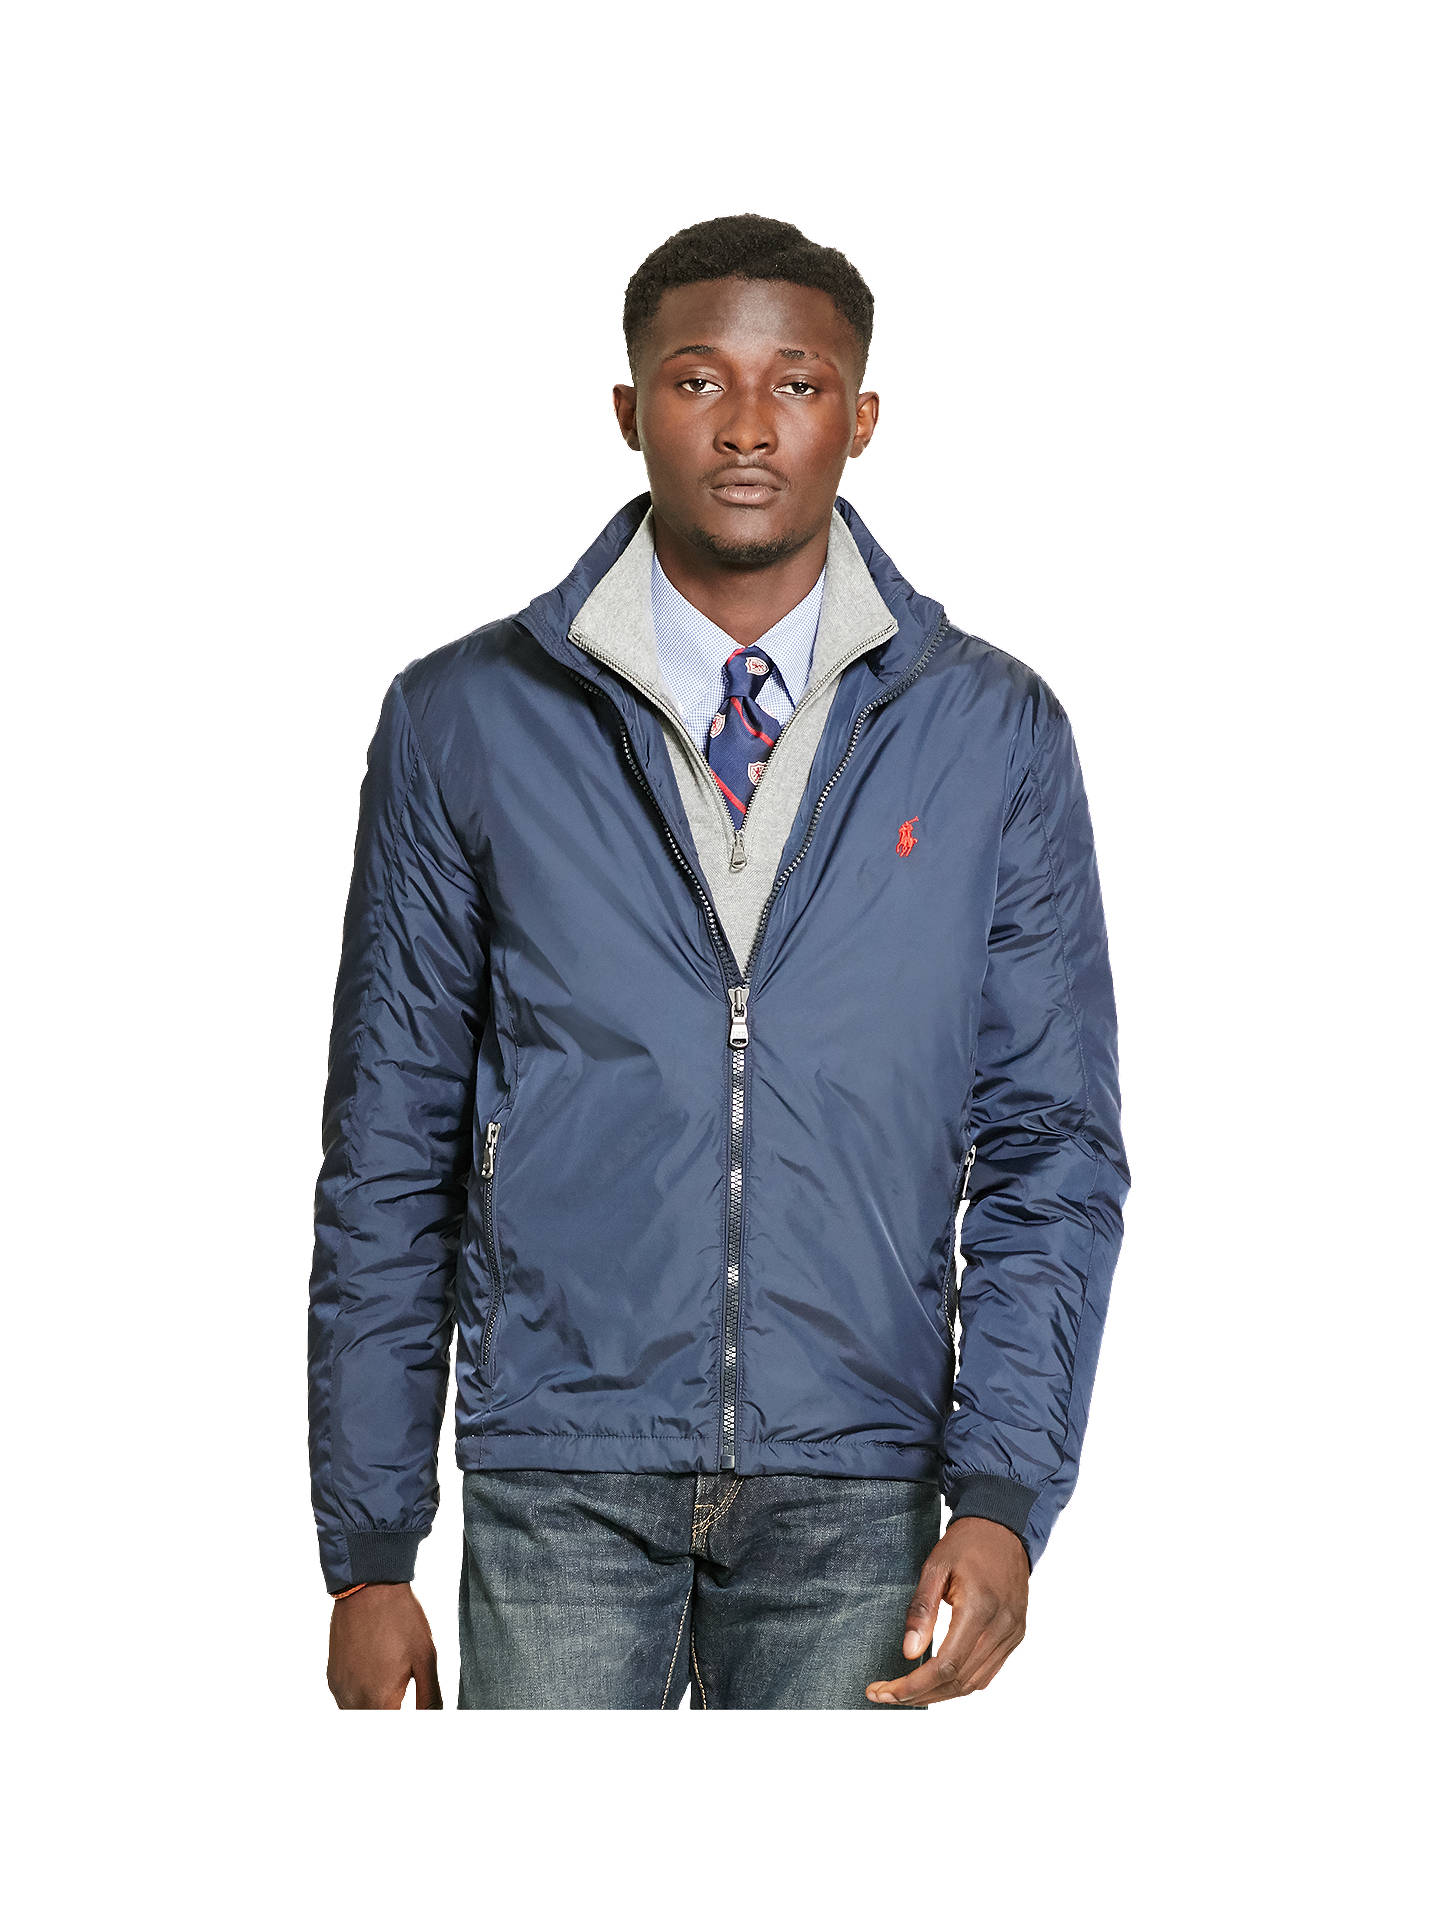 At Lauren Polo Windbreaker Navy Ralph JacketAviator Retford John MVqSzpGU